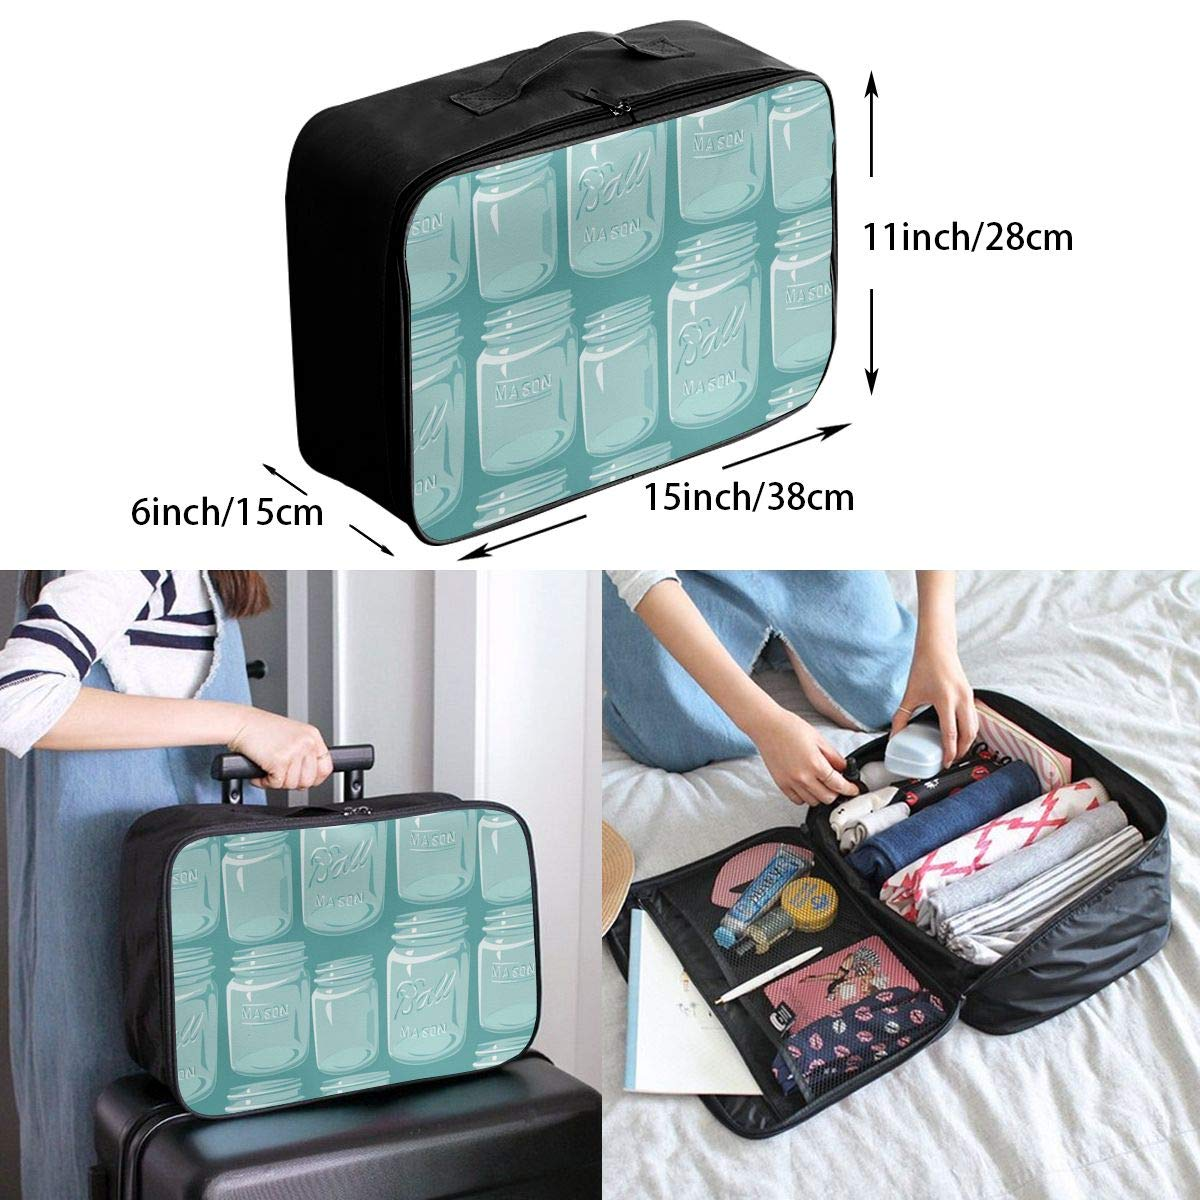 Luggage Duffel Bag Mathematical And Physics Lightweight Waterproof Storage Carry On Travel Duffle Tote Bag Gift for Boys Girls